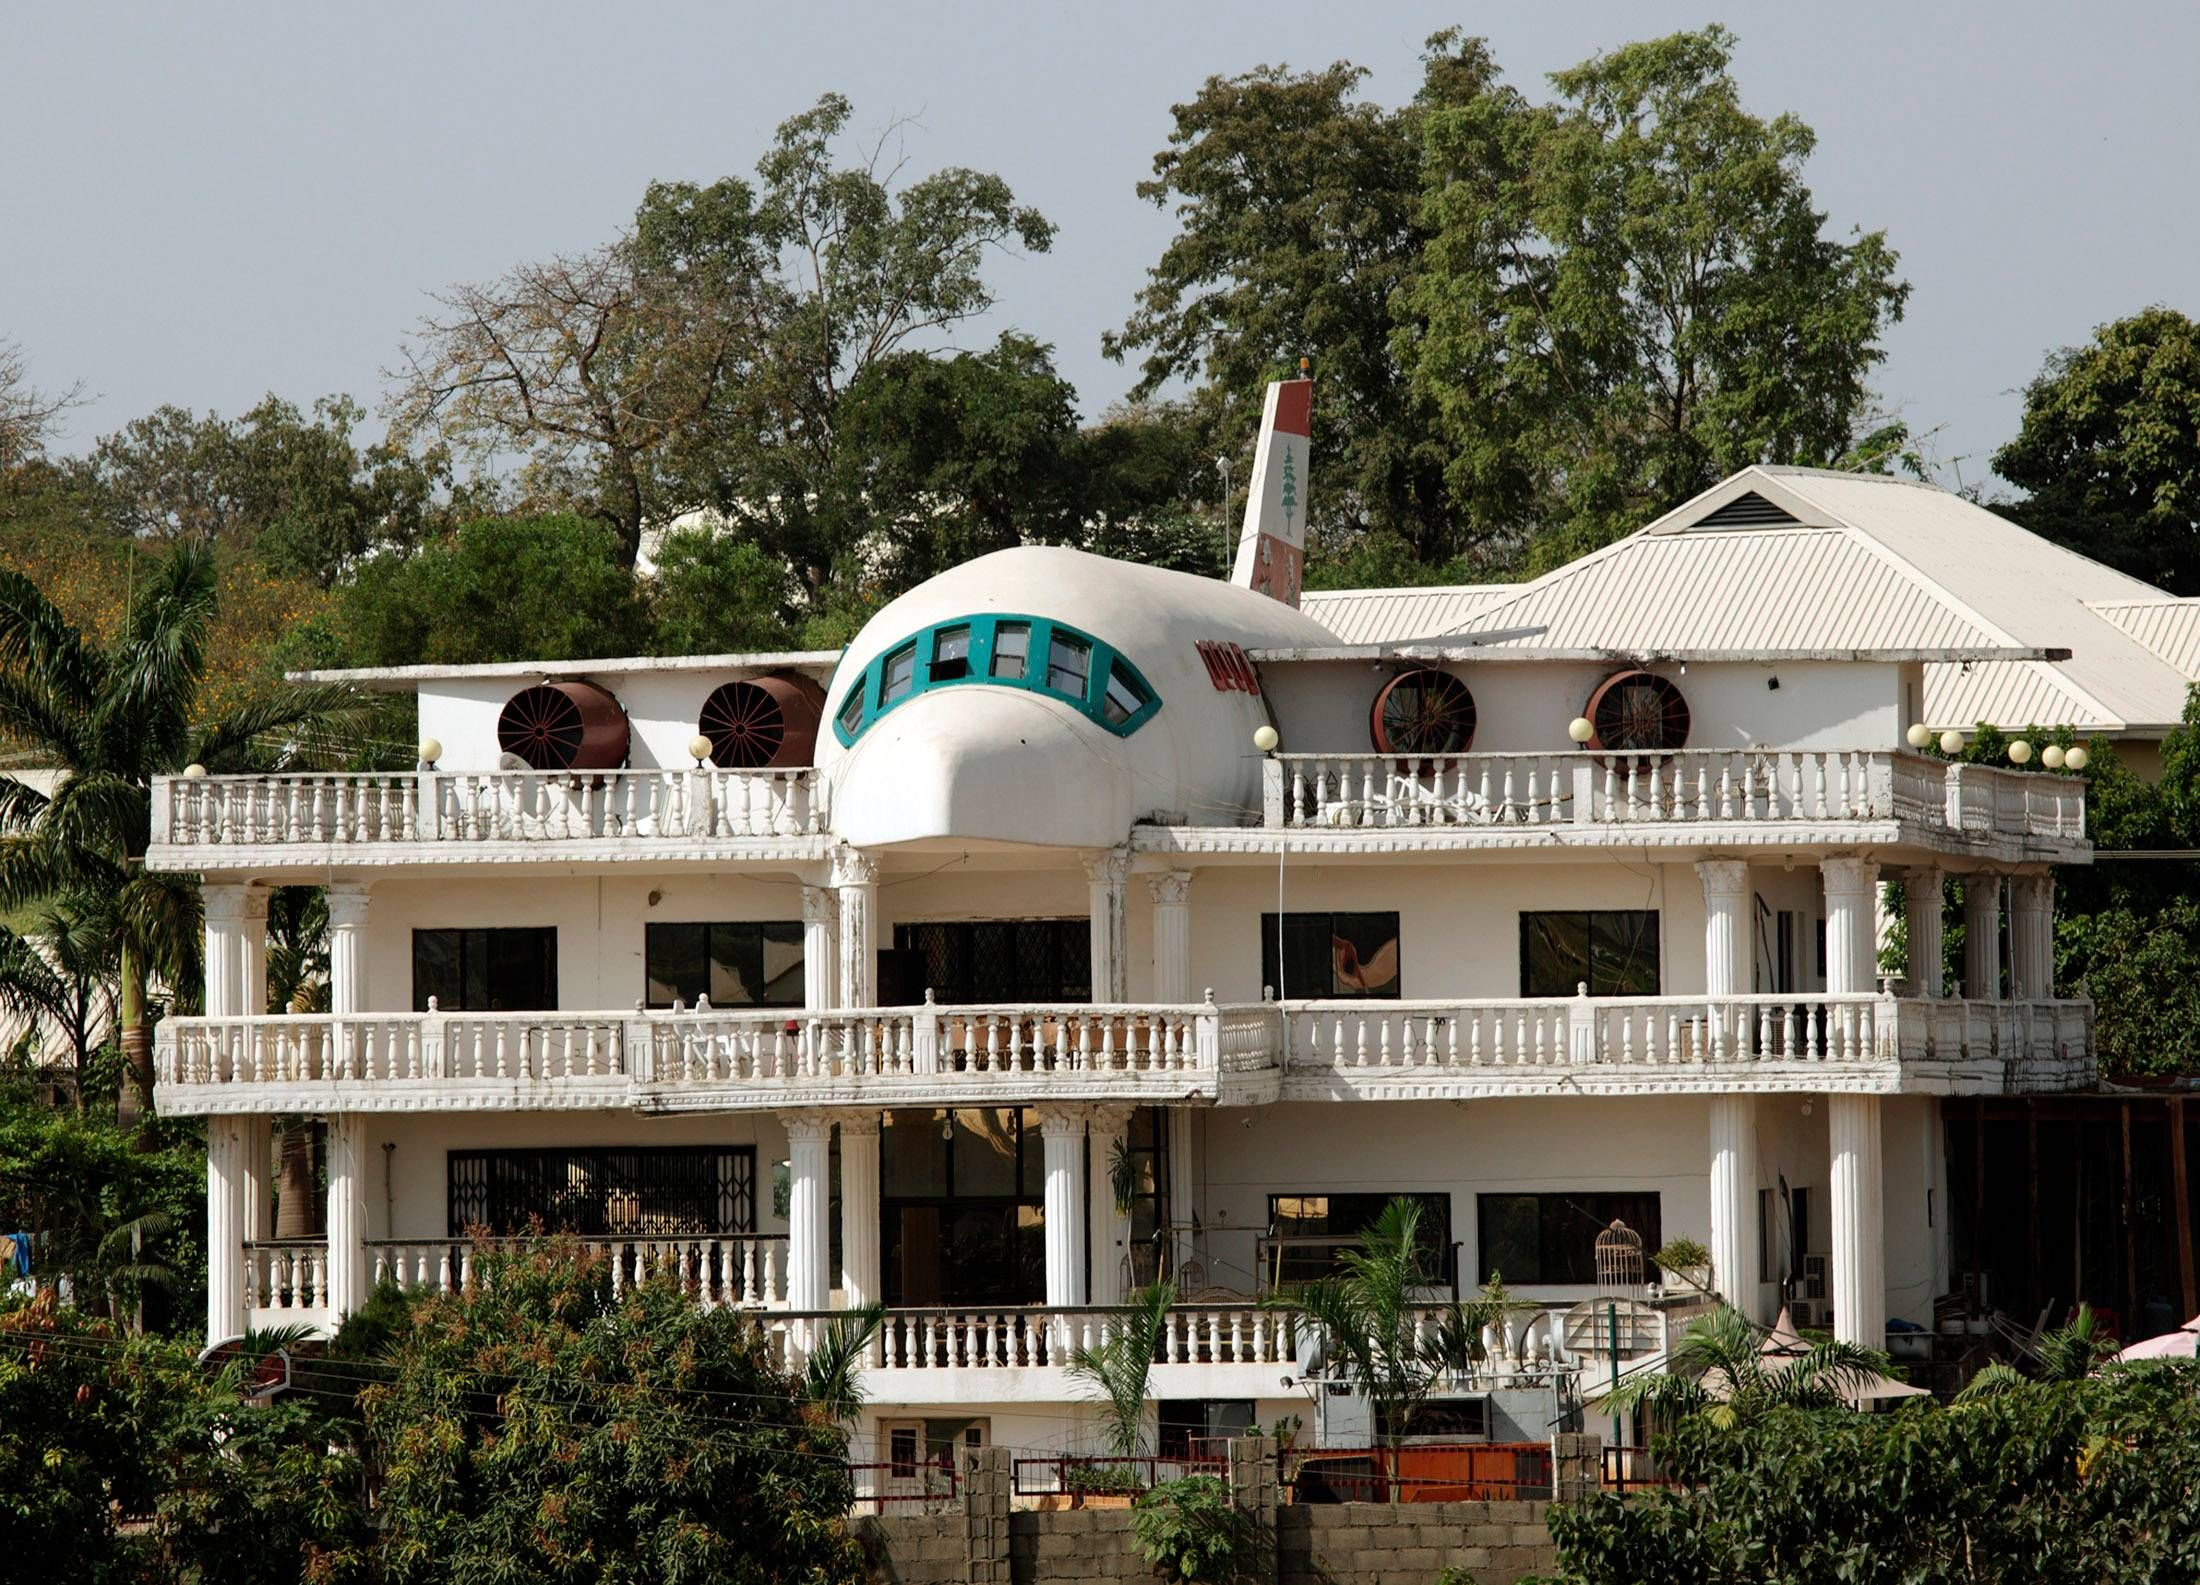 25 Of The Weirdest Houses From Around The World Crazy Houses Unusual Buildings Airplane House